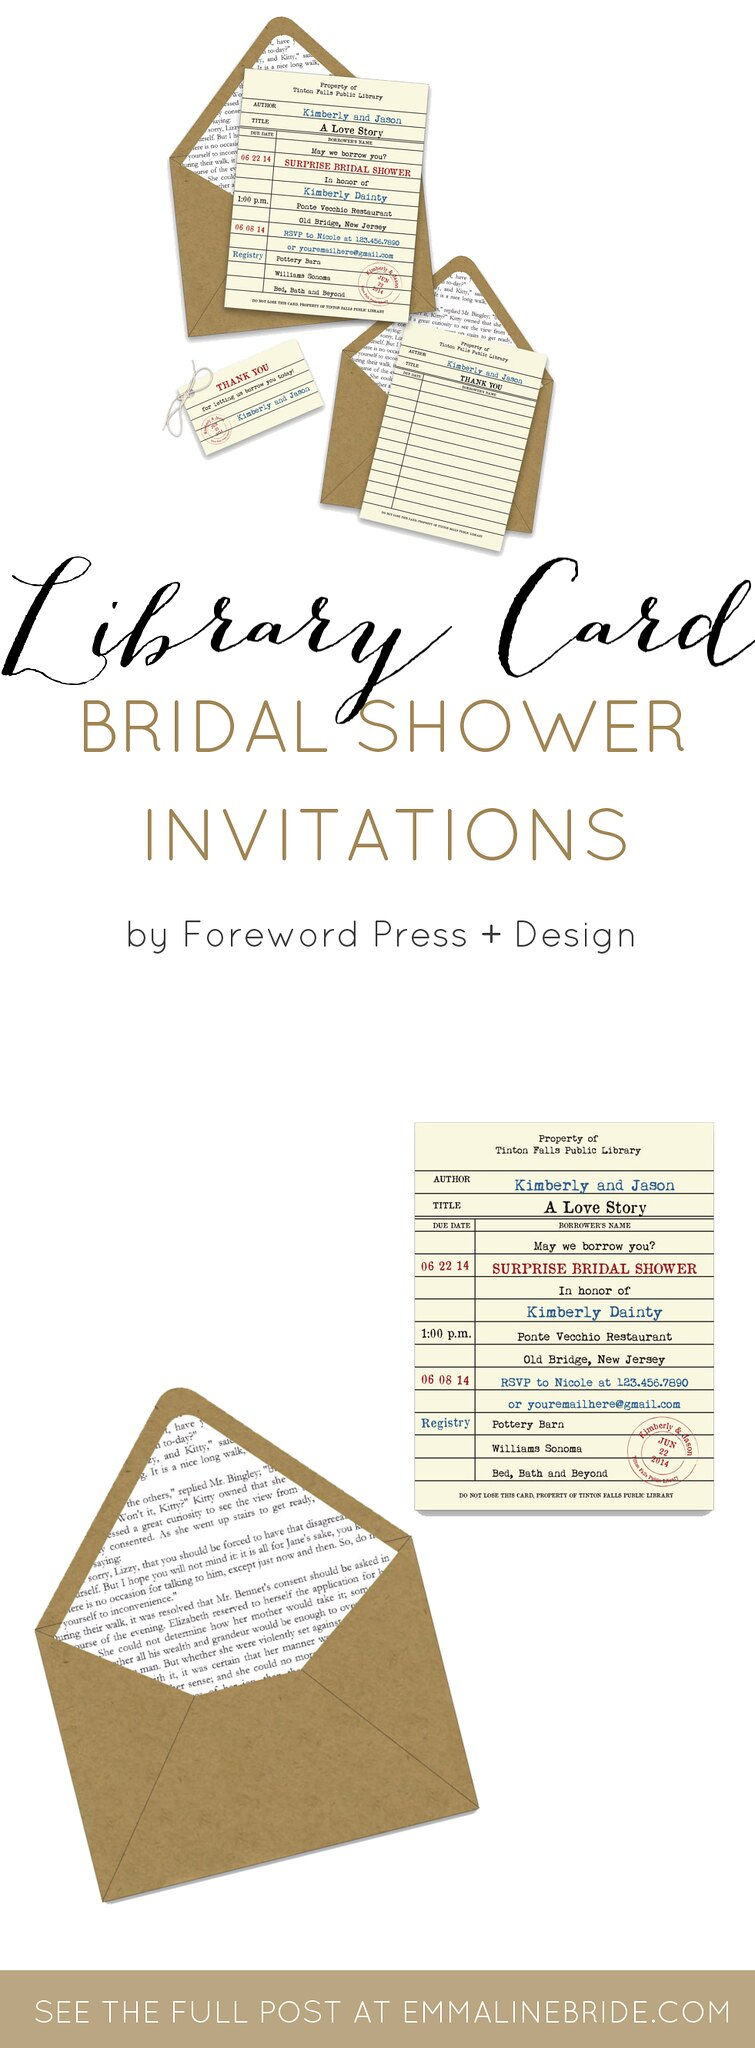 Library Card Bridal Shower Invitations Are Insanely Creative